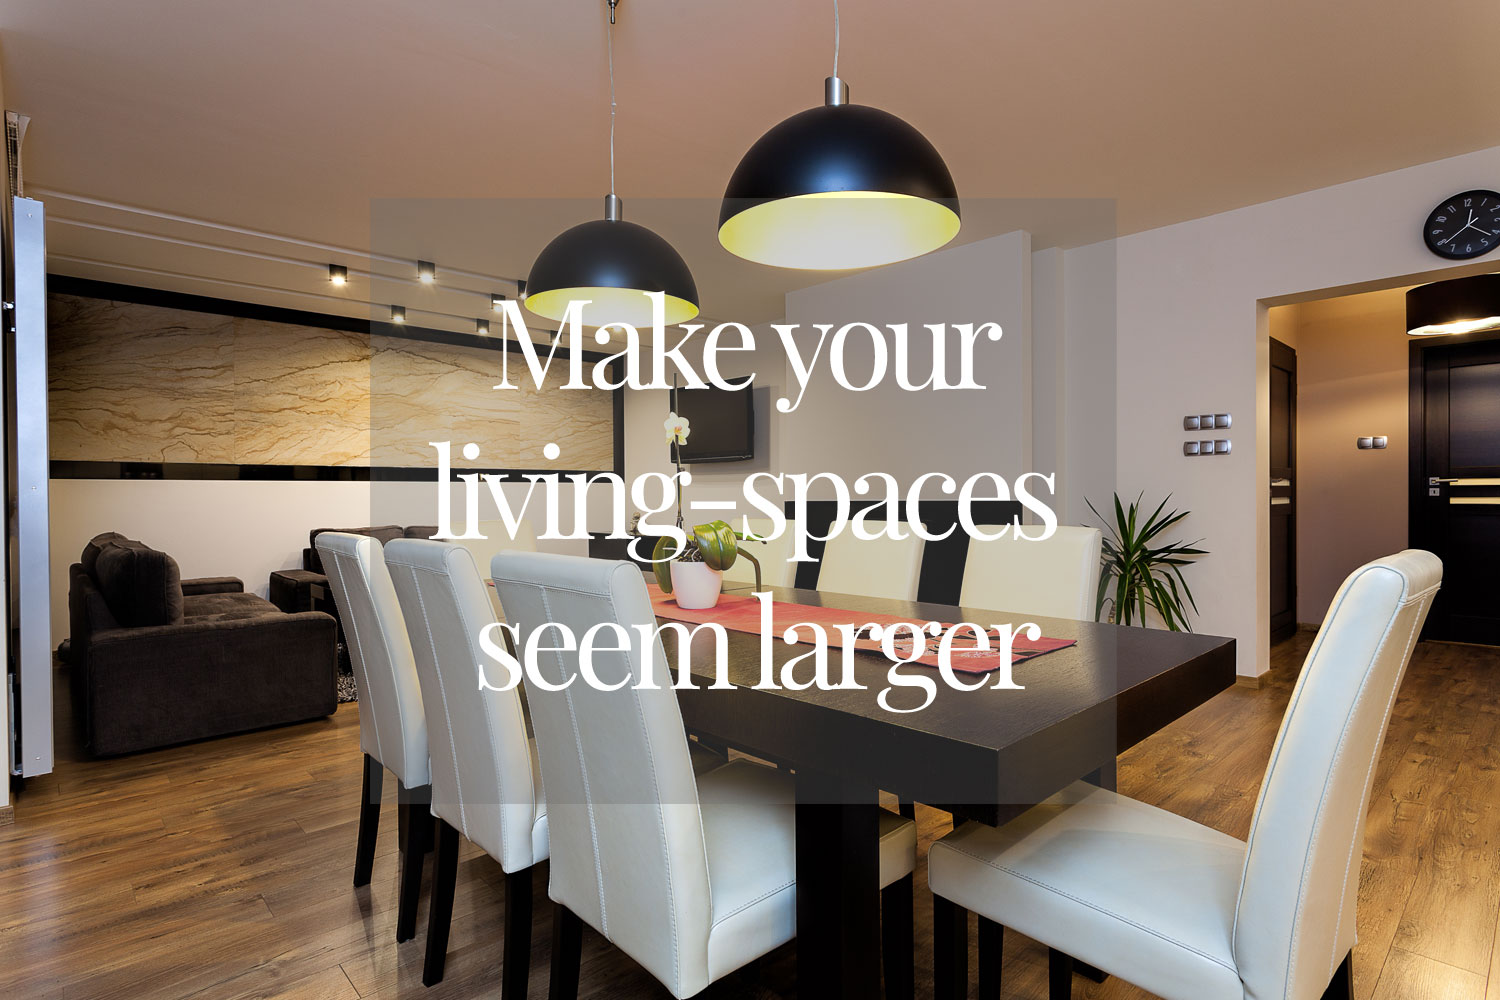 Make your living spaces seem larger featured image